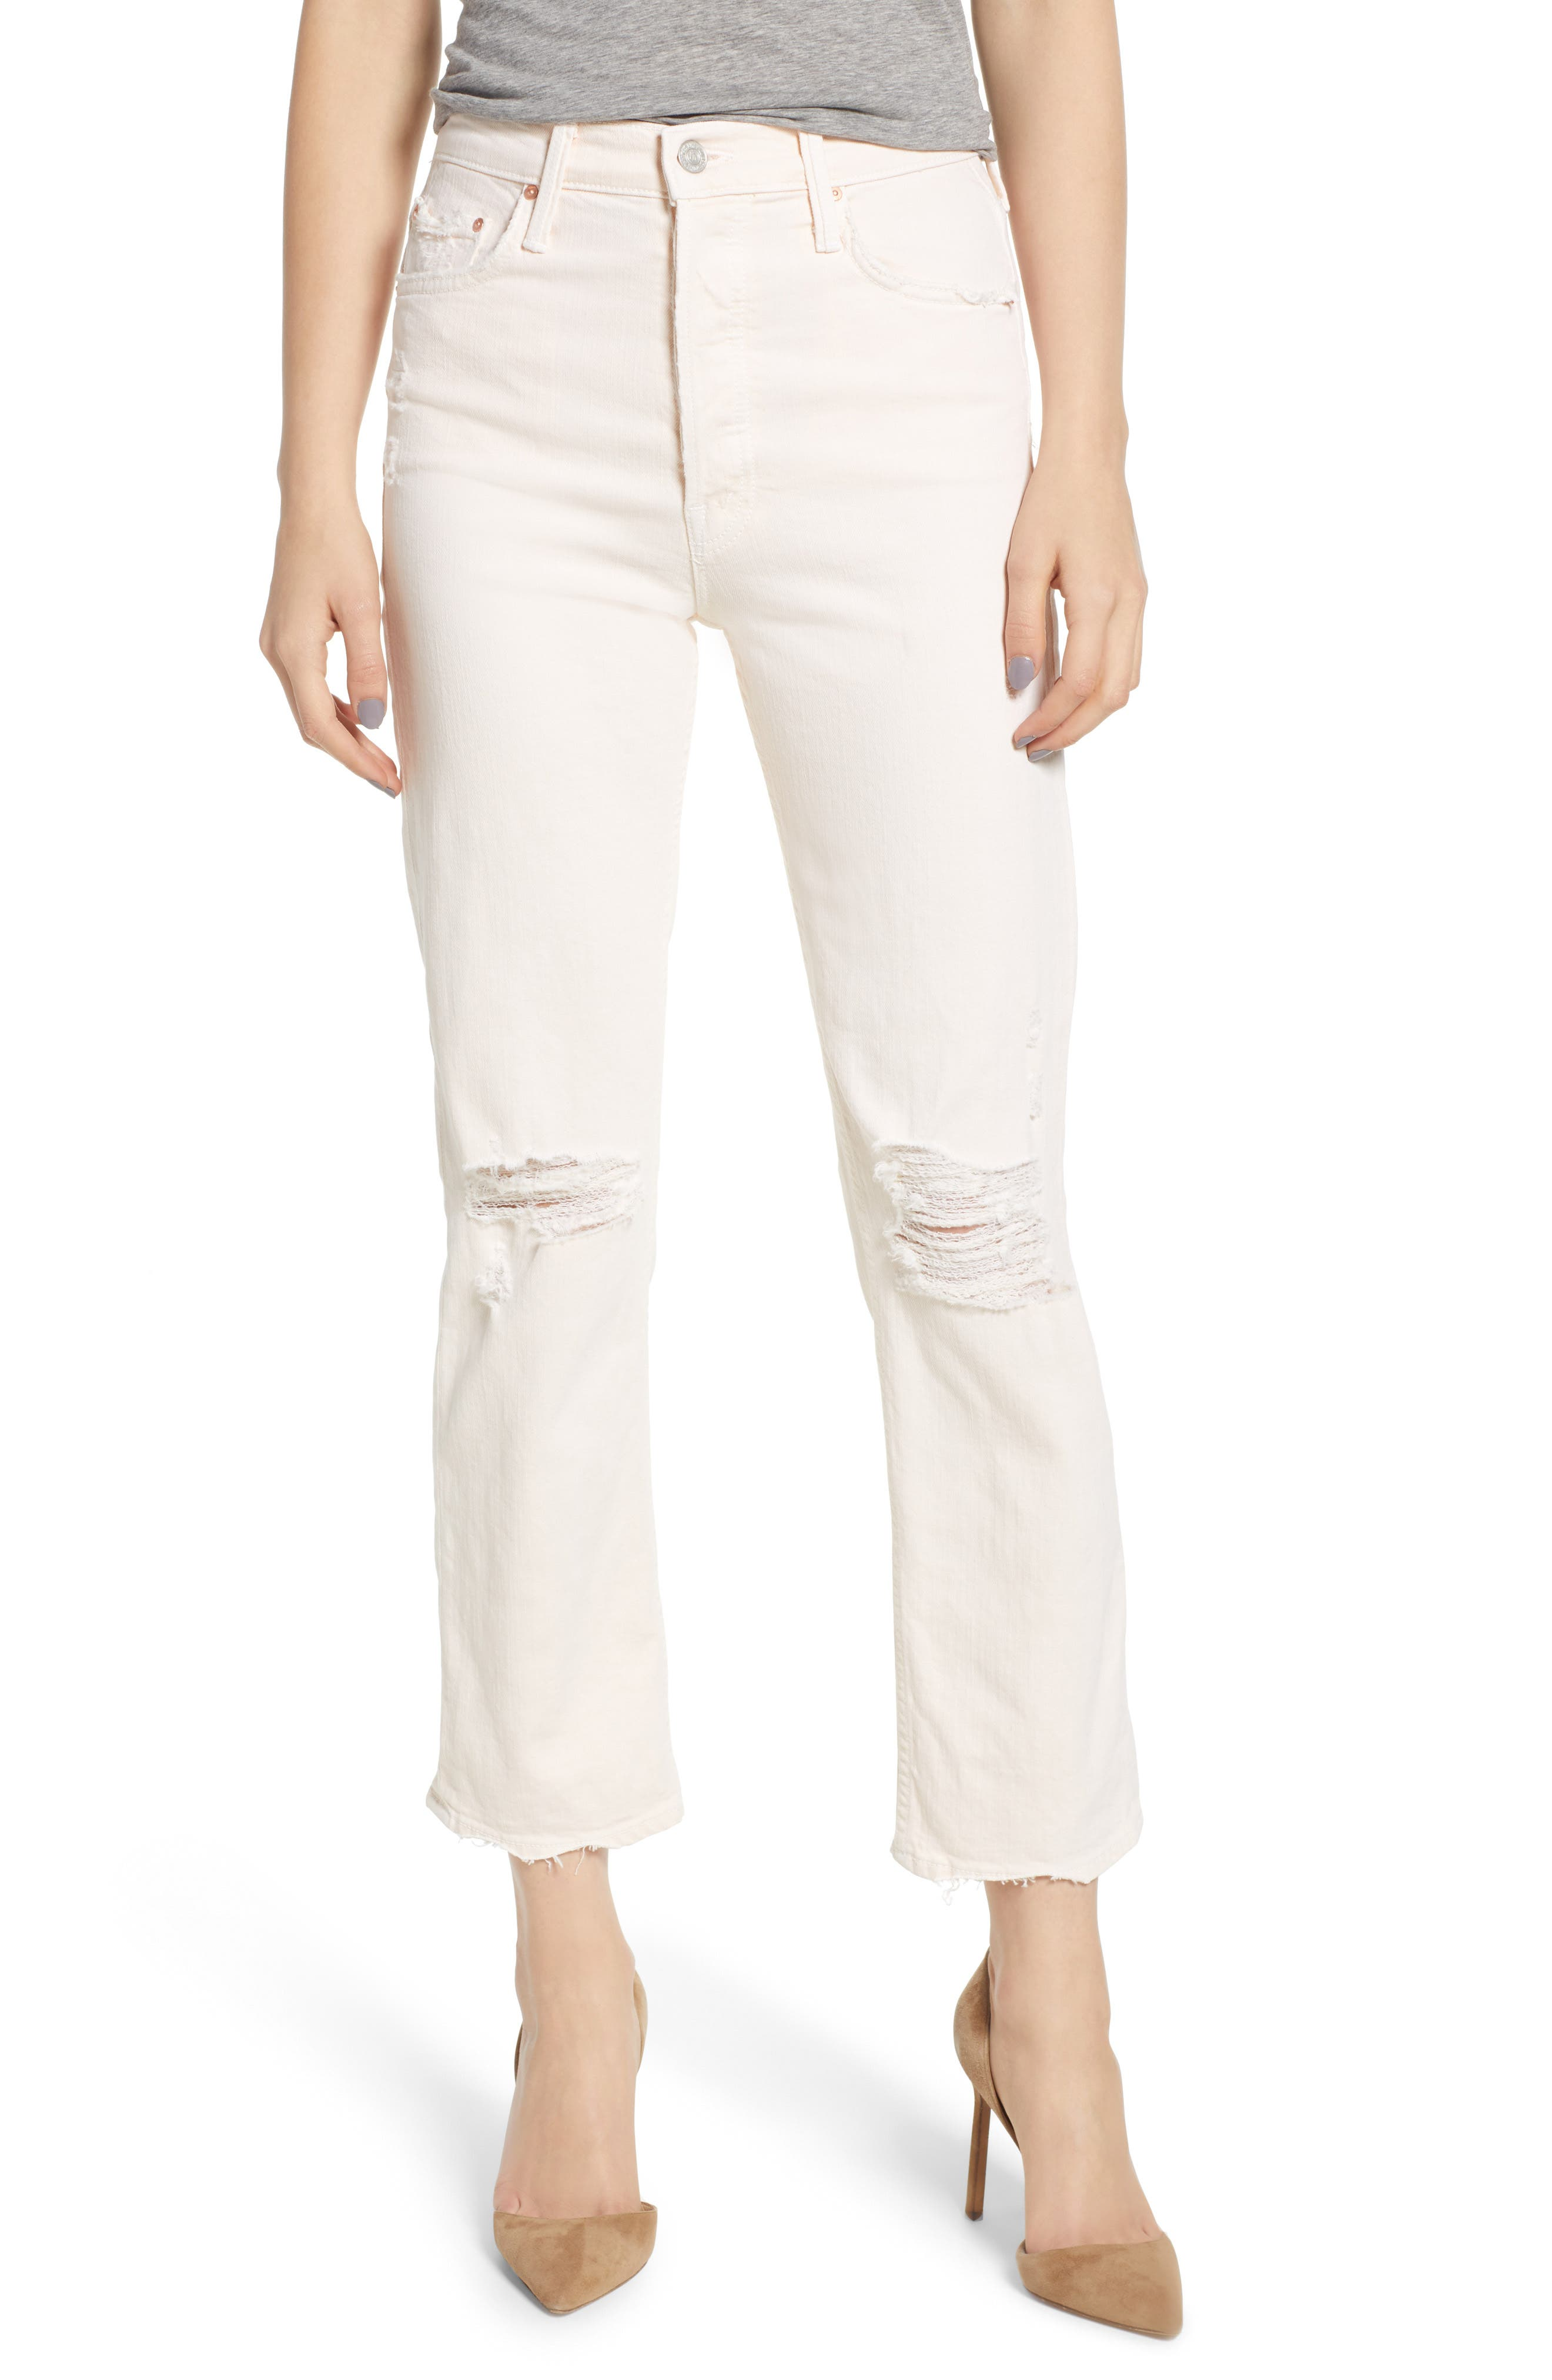 THE TOMCAT CHEW RIPPED CROP HIGH WAIST JEANS